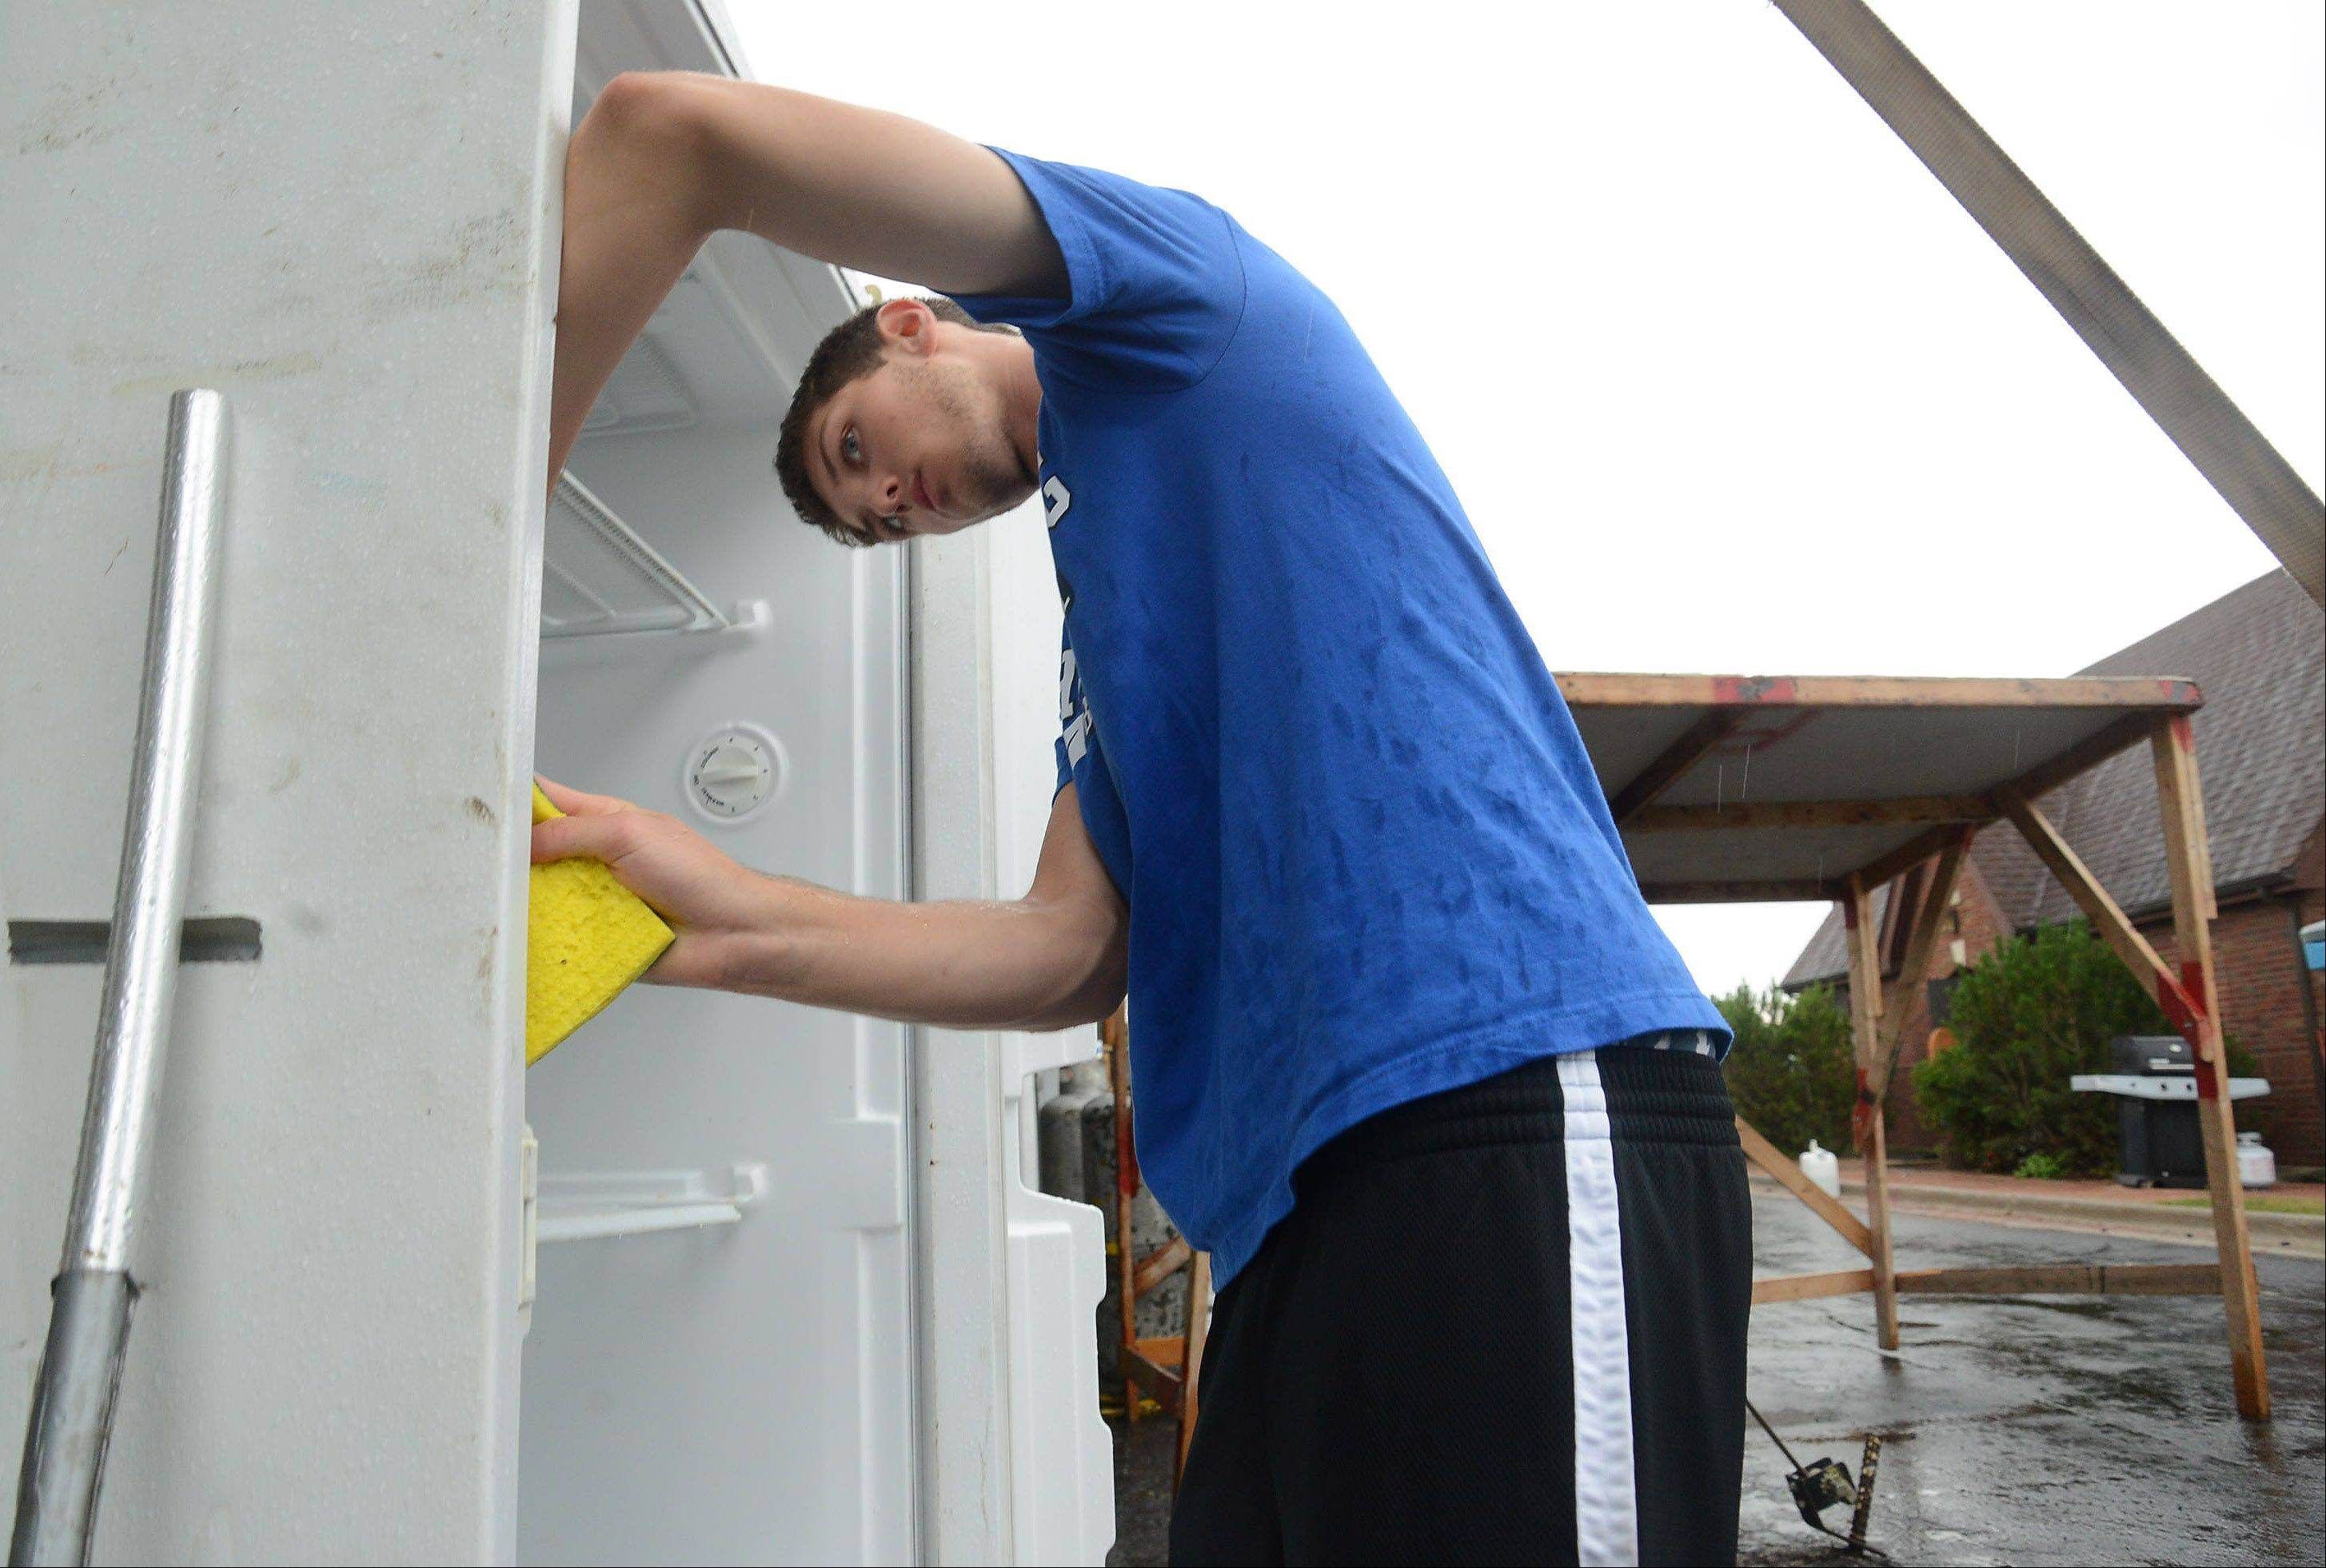 Justin Webb, of Wheeling High School boys basketball, washes down a cooler.